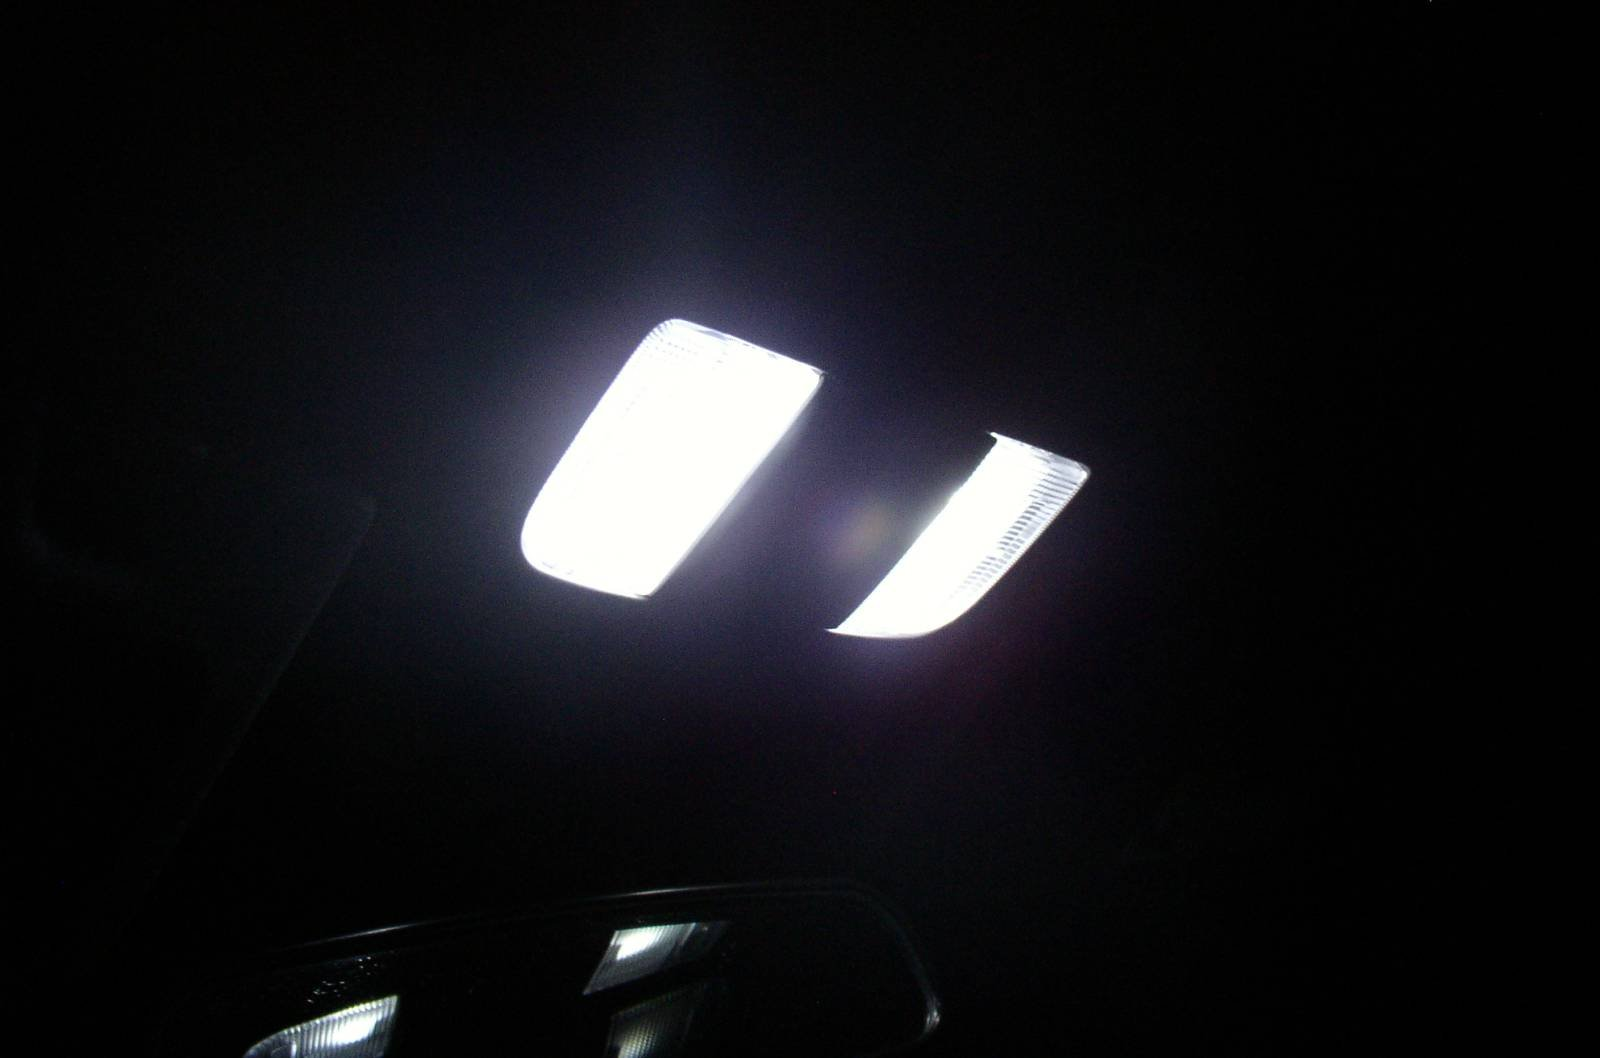 Does Anyone Know Of A Good 9005 Hid Look-alike Bulb